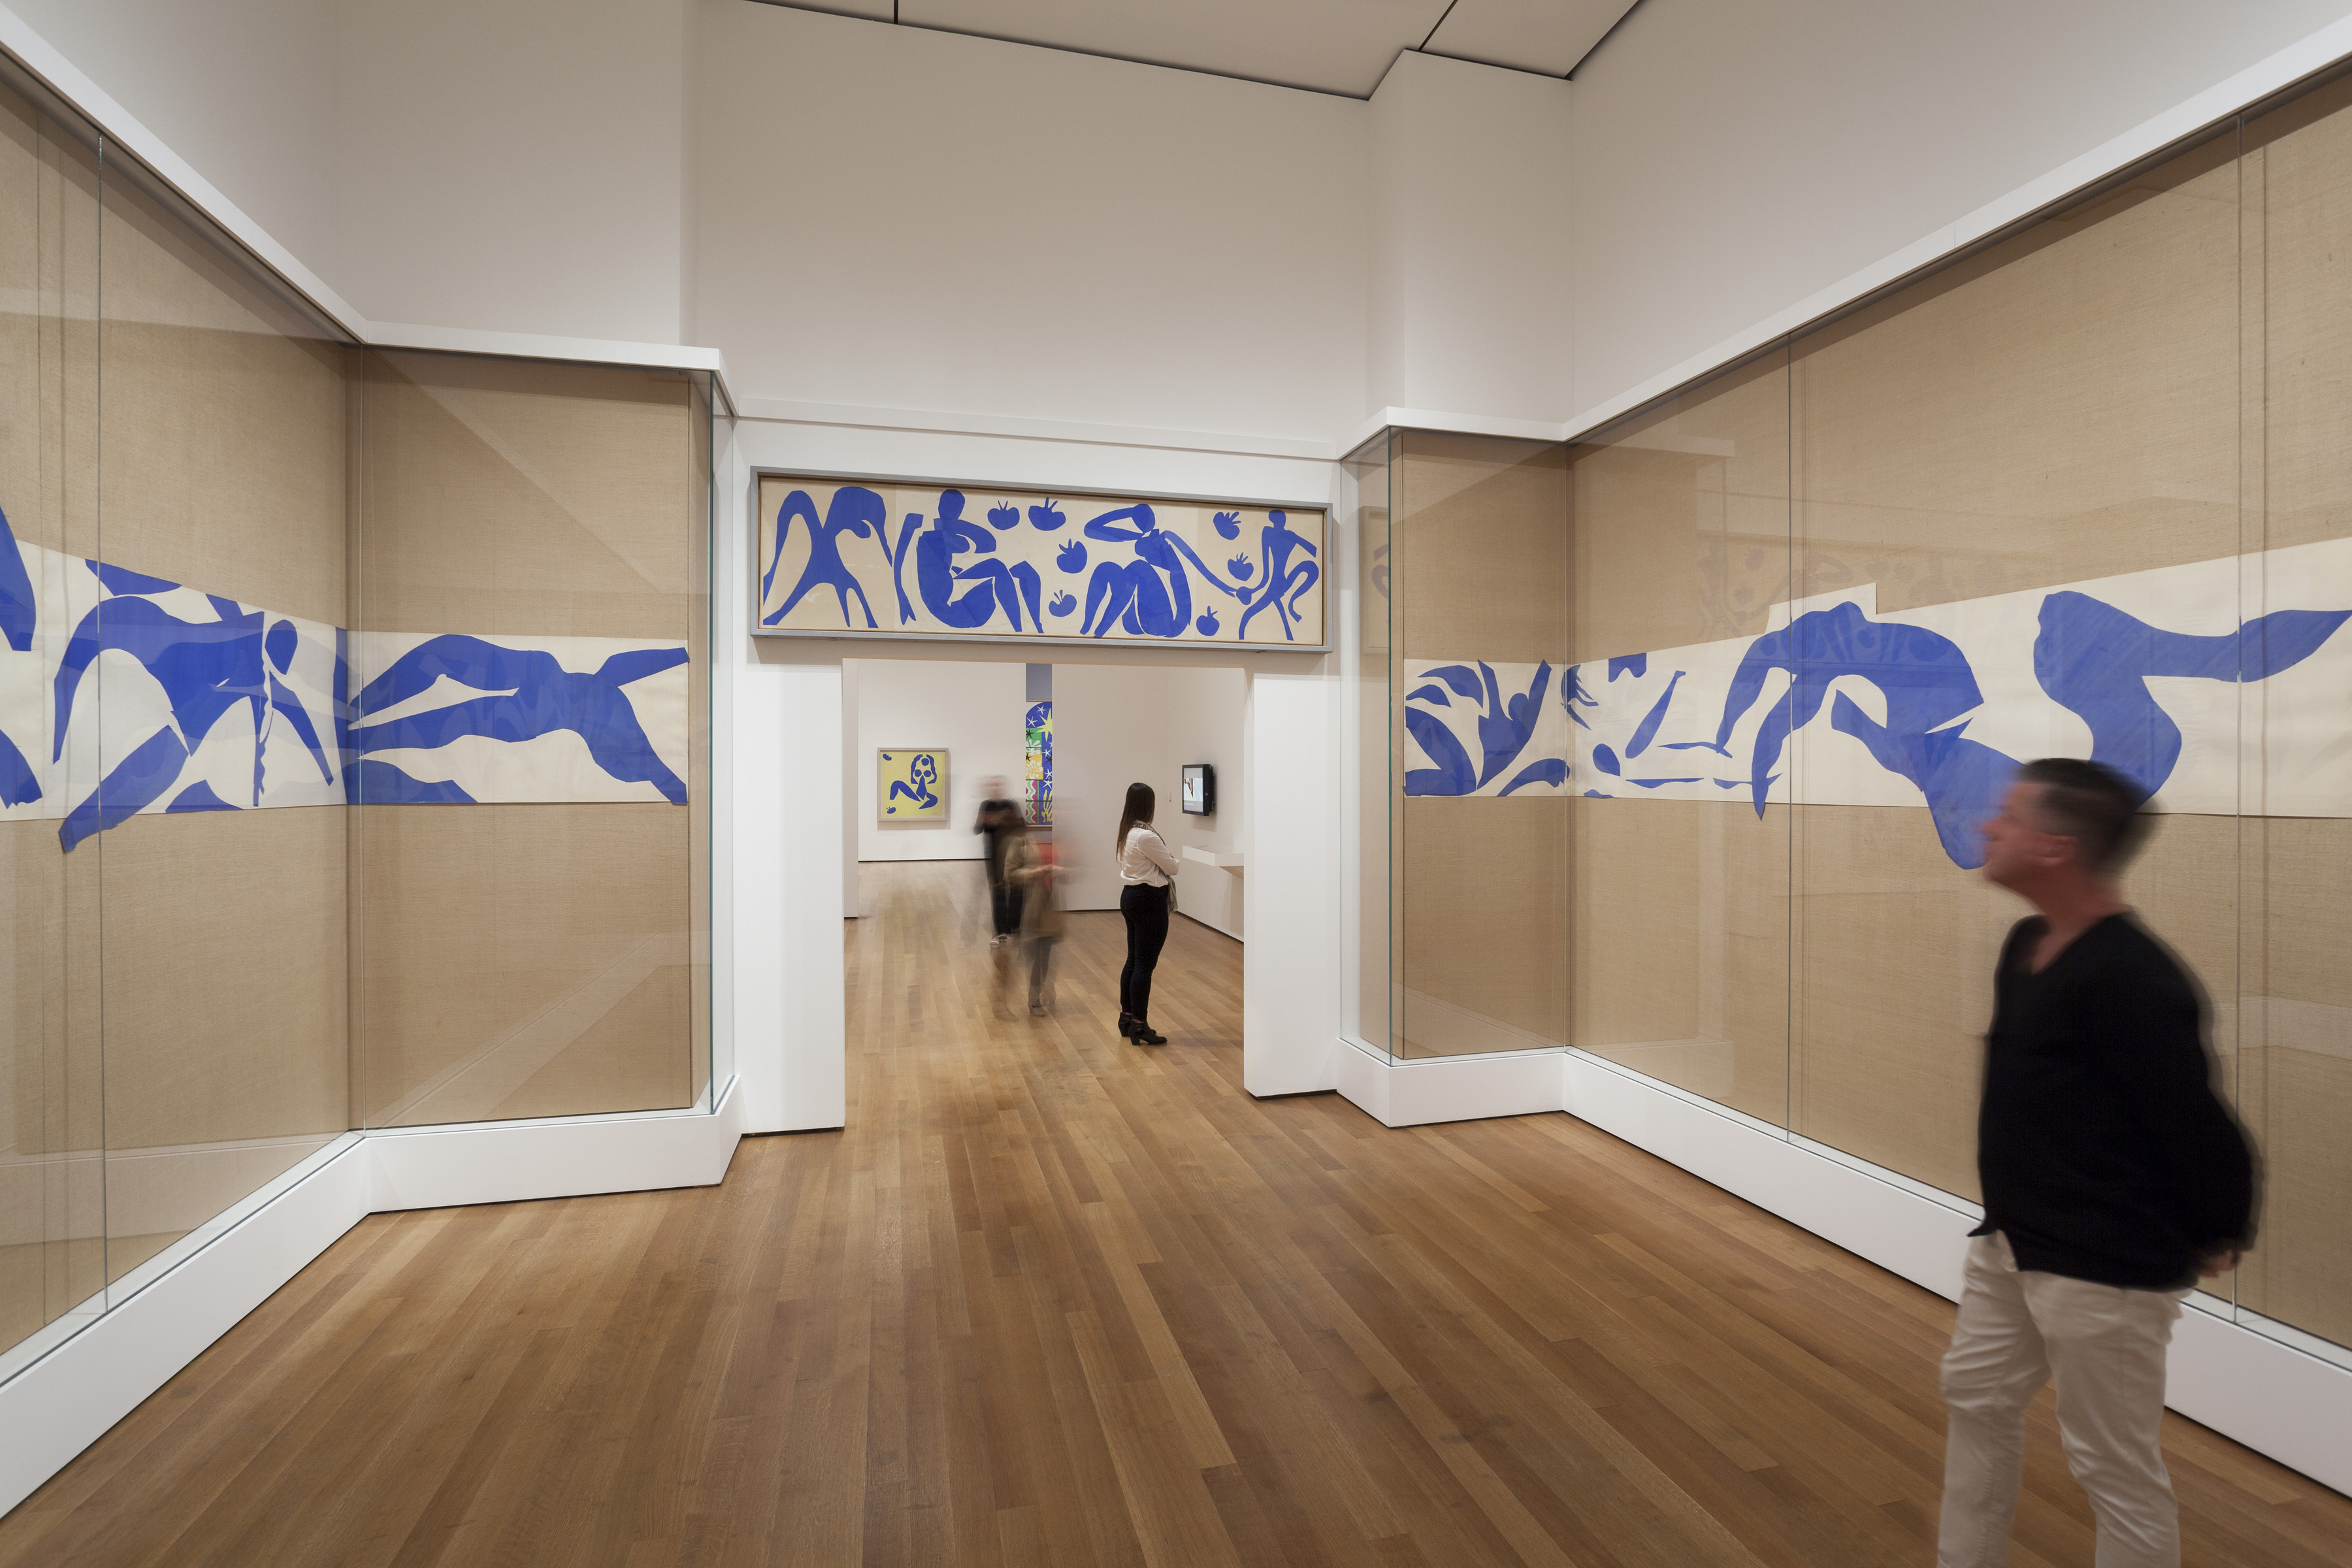 matisse cut outs at moma bmoreart baltimore contemporary art. Black Bedroom Furniture Sets. Home Design Ideas